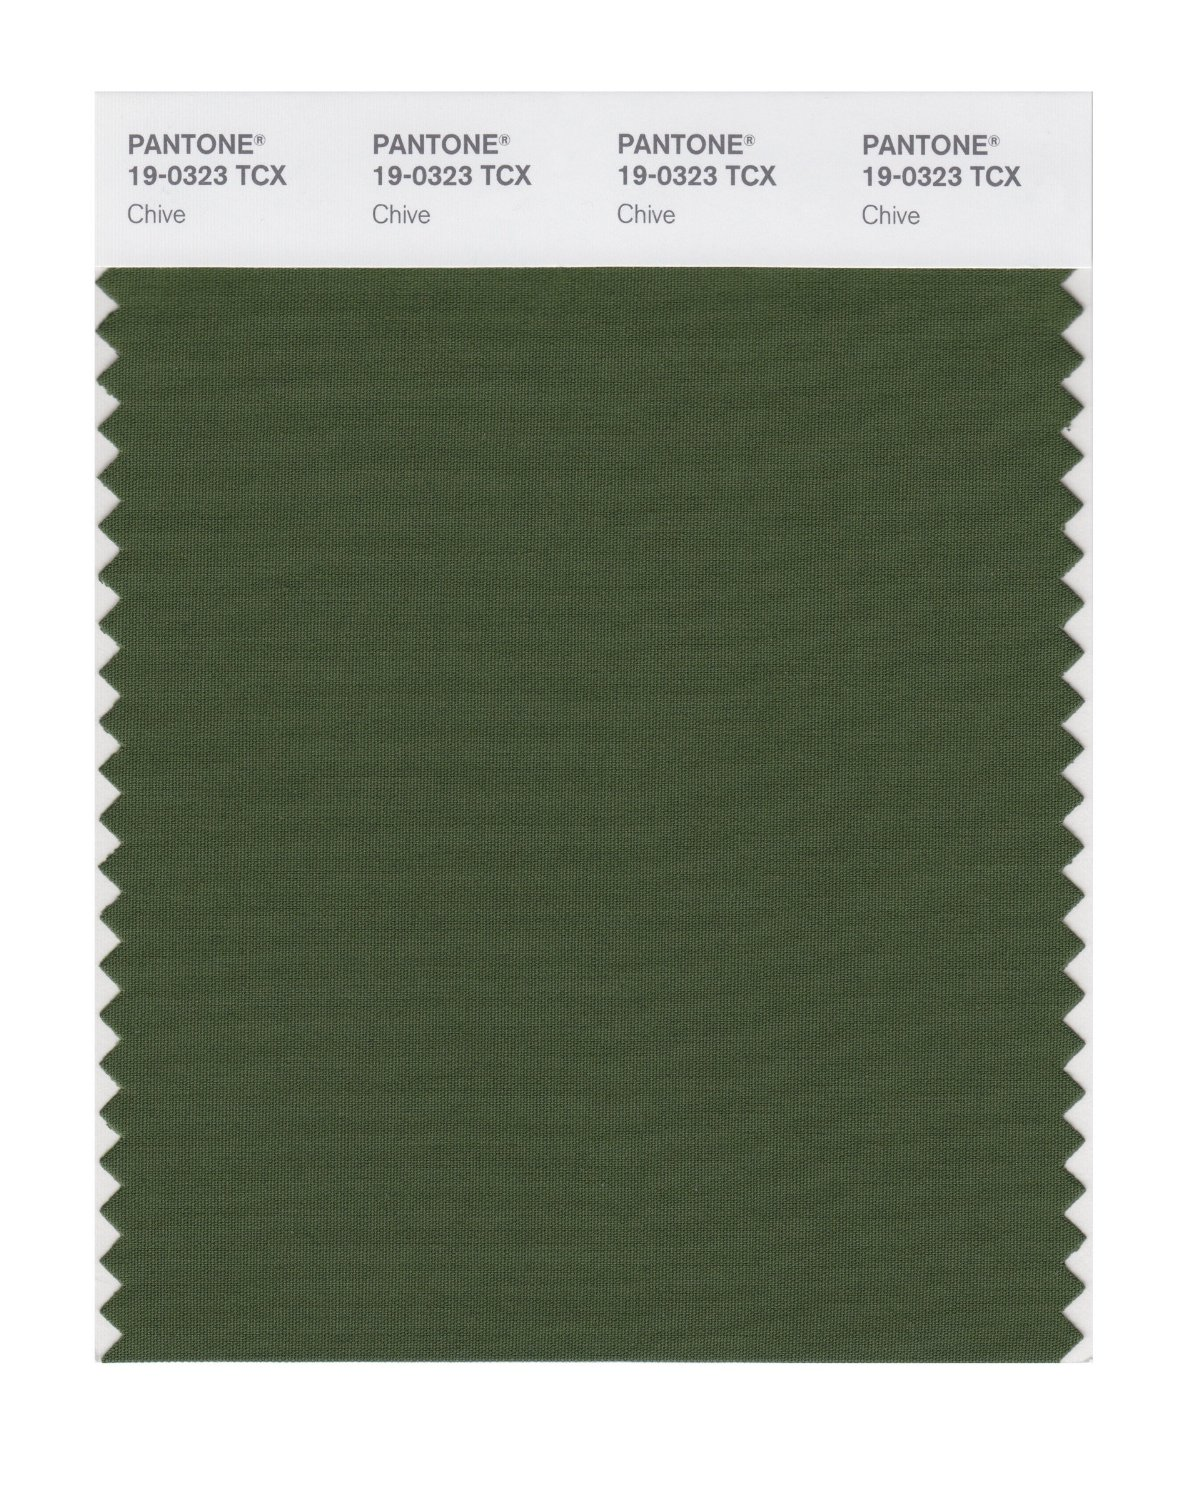 Pantone Smart Swatch 19-0323 Chive